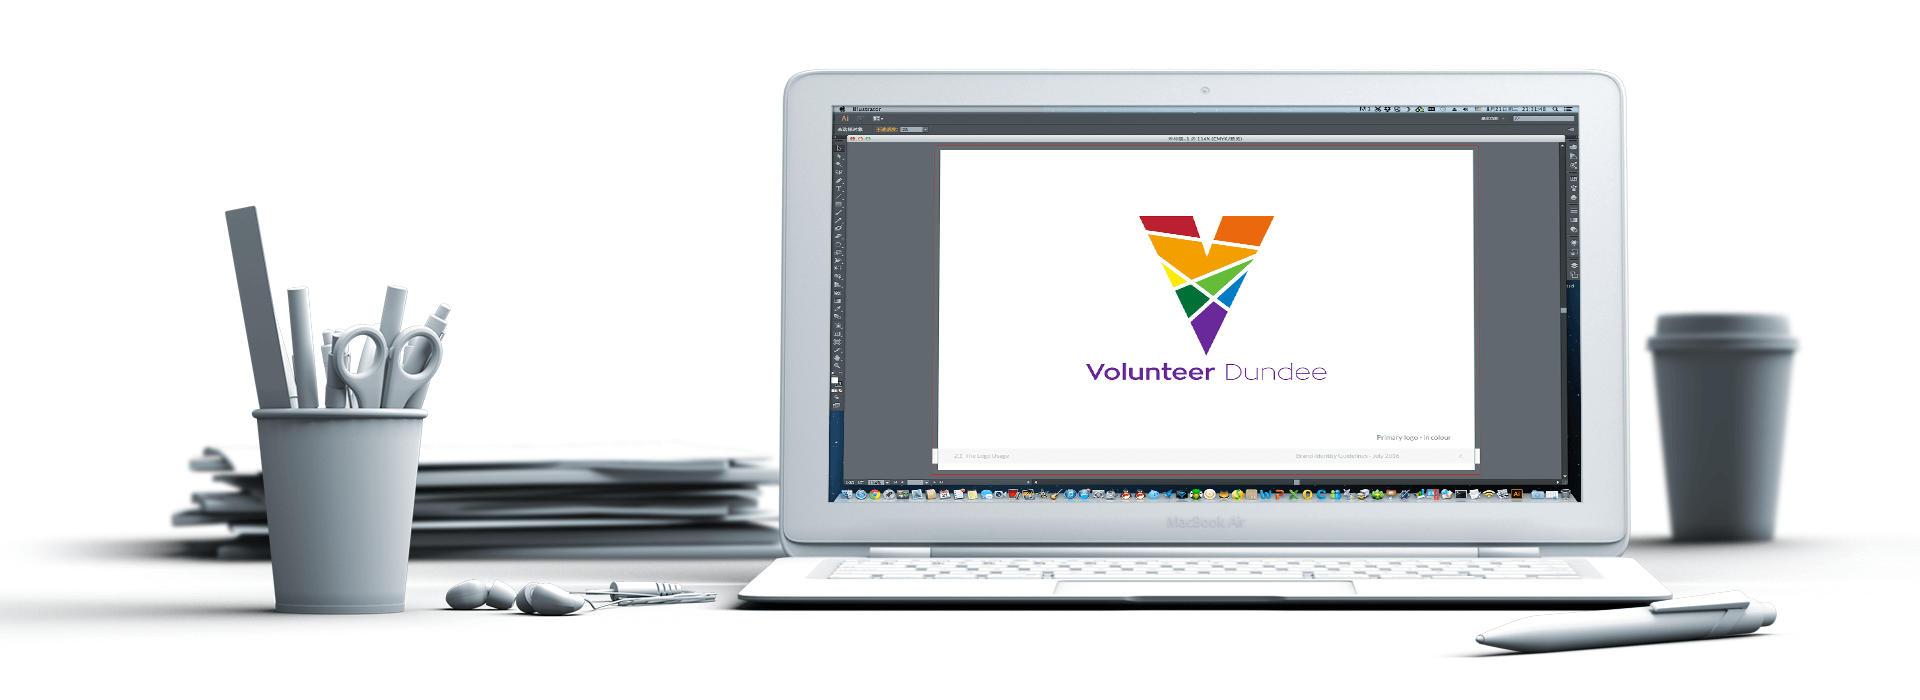 Volunteer Dundee Logo Macbook